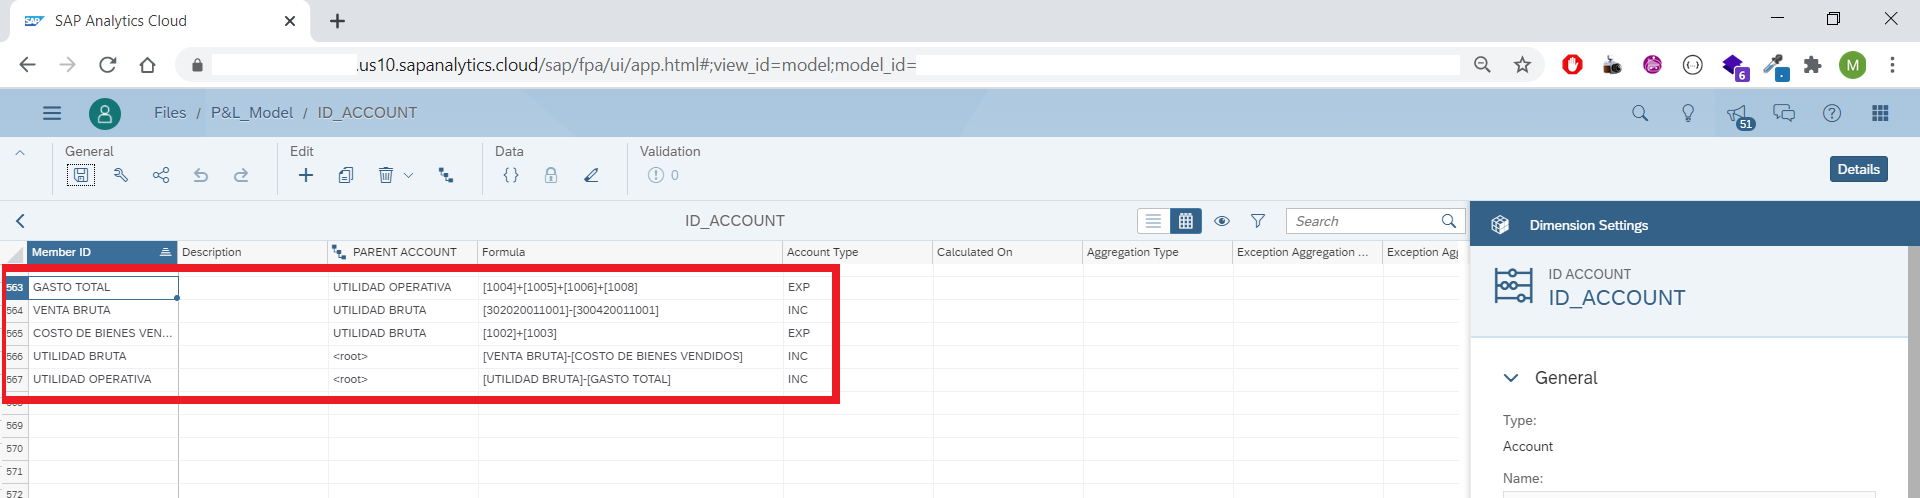 Create a Profit & Loss Statement in SAP Analytics Cloud importing ...